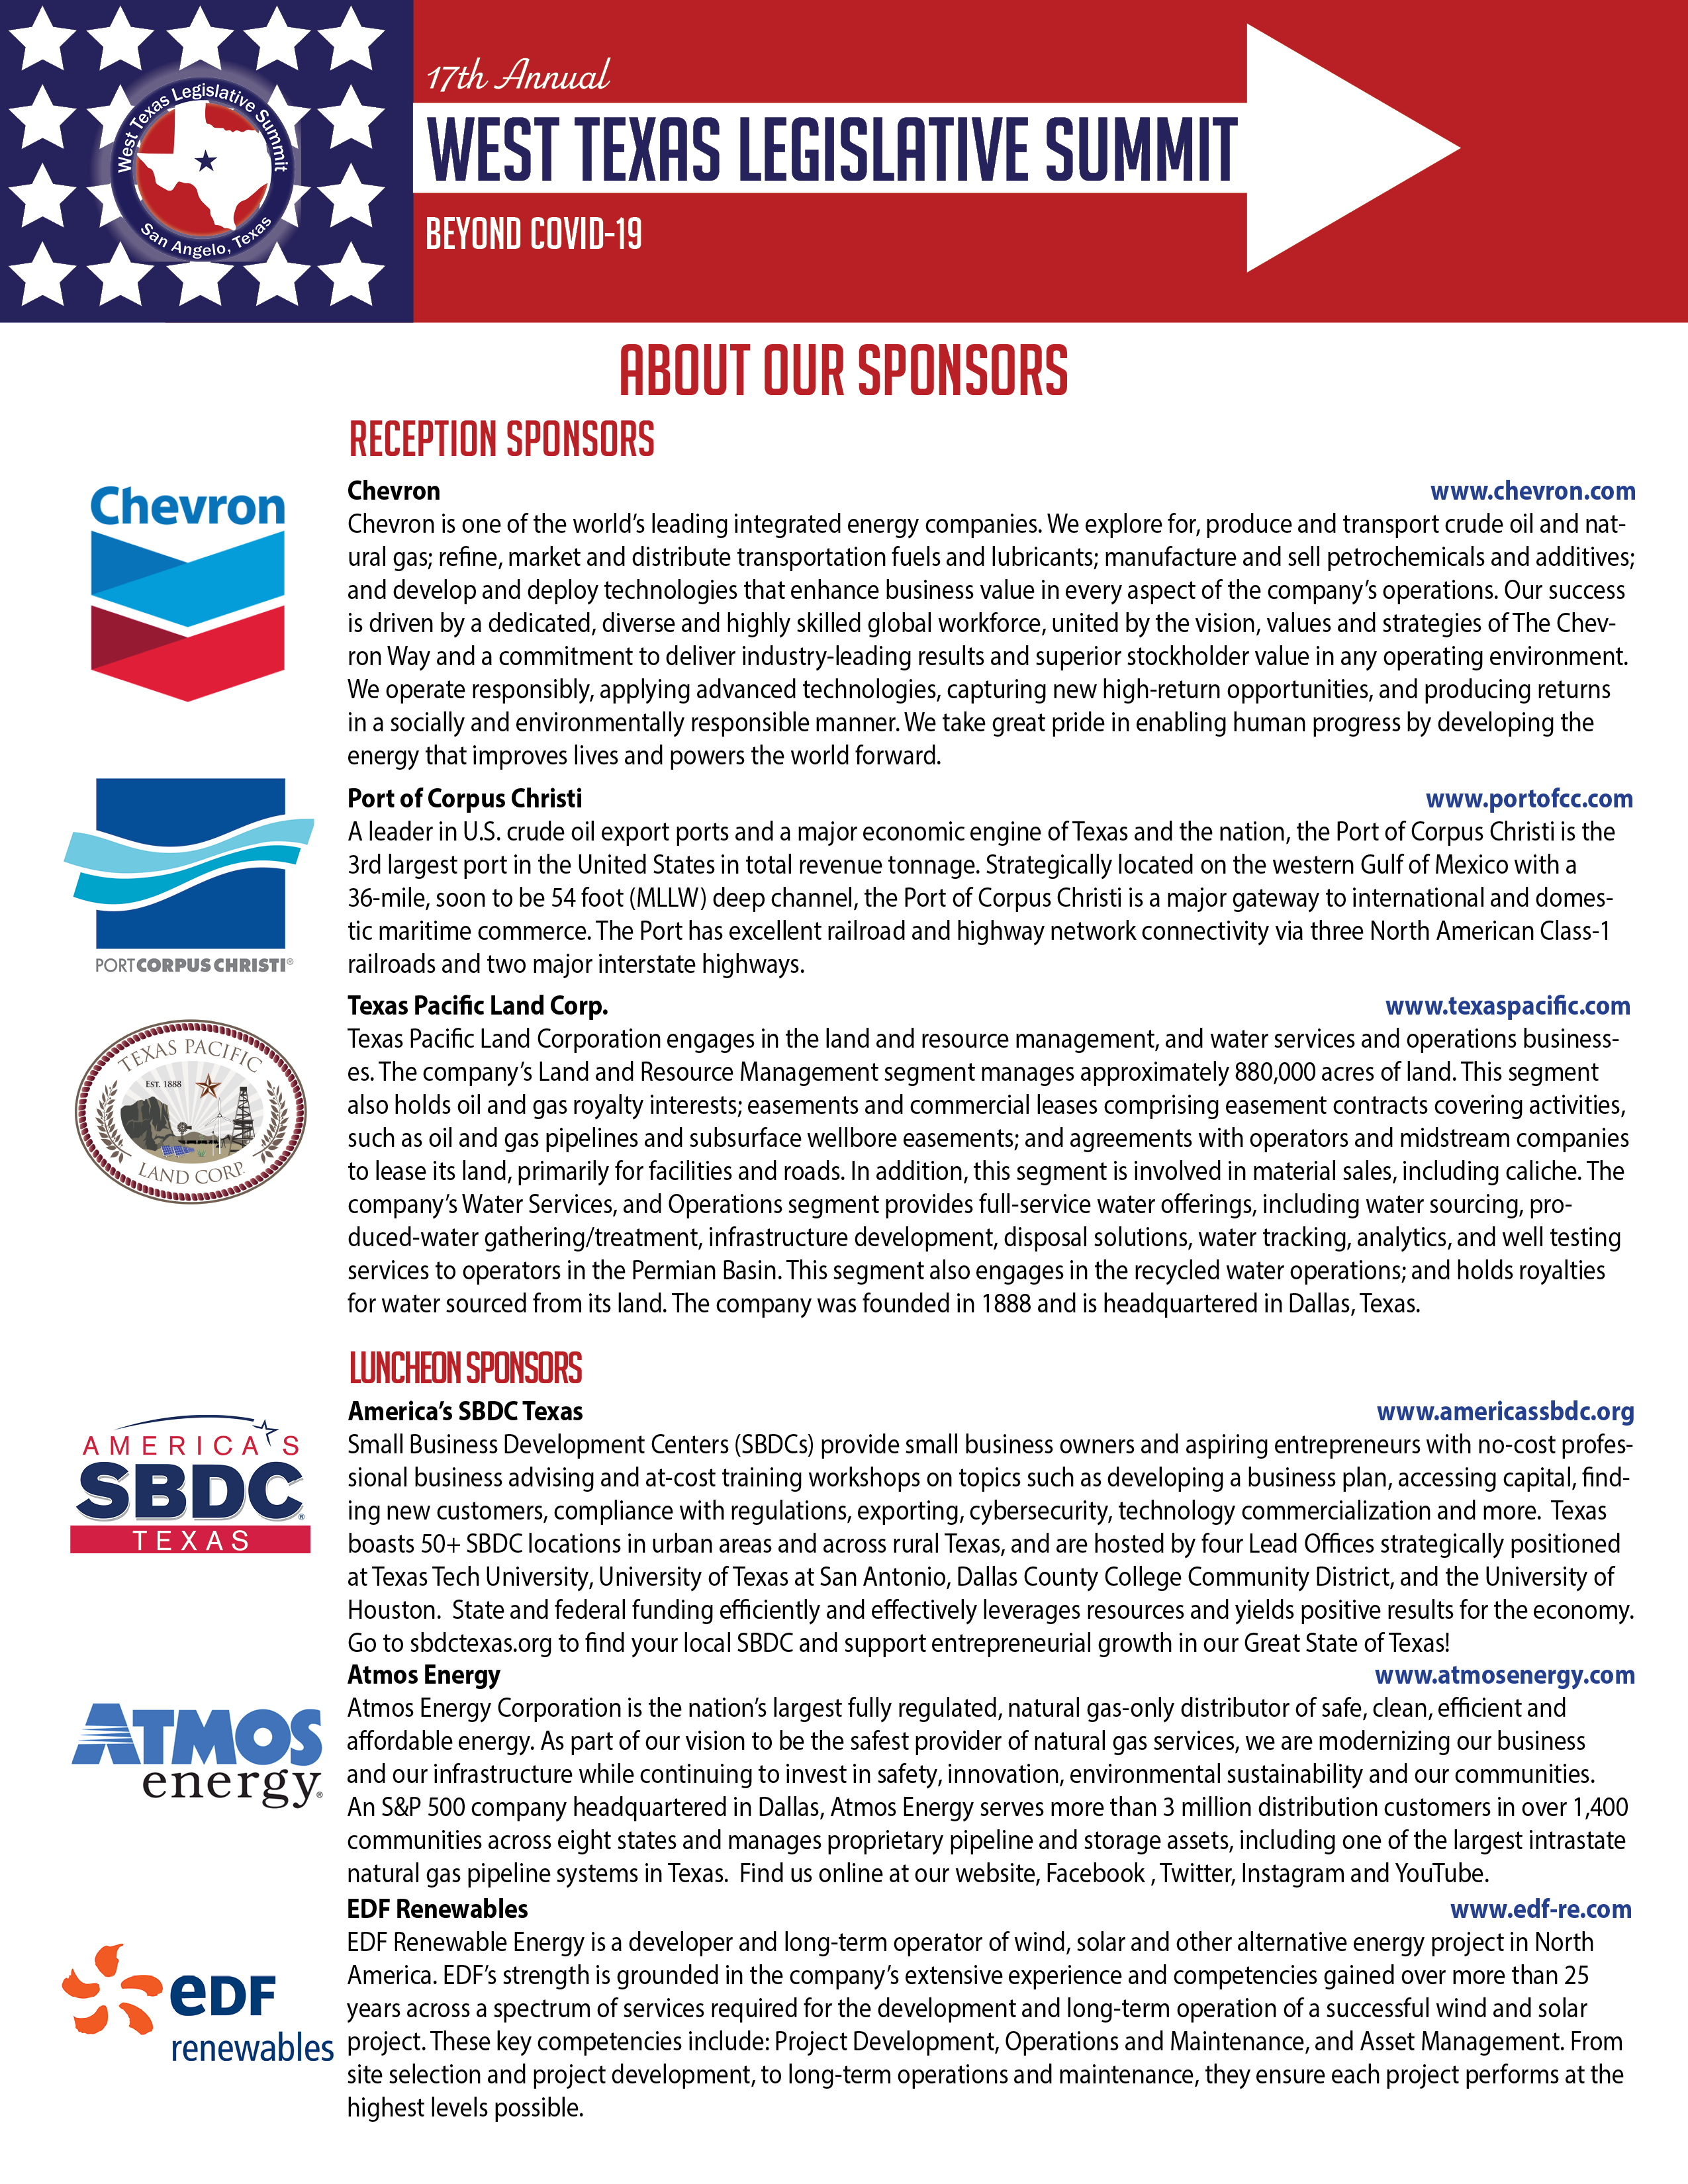 About Our Sponsors1